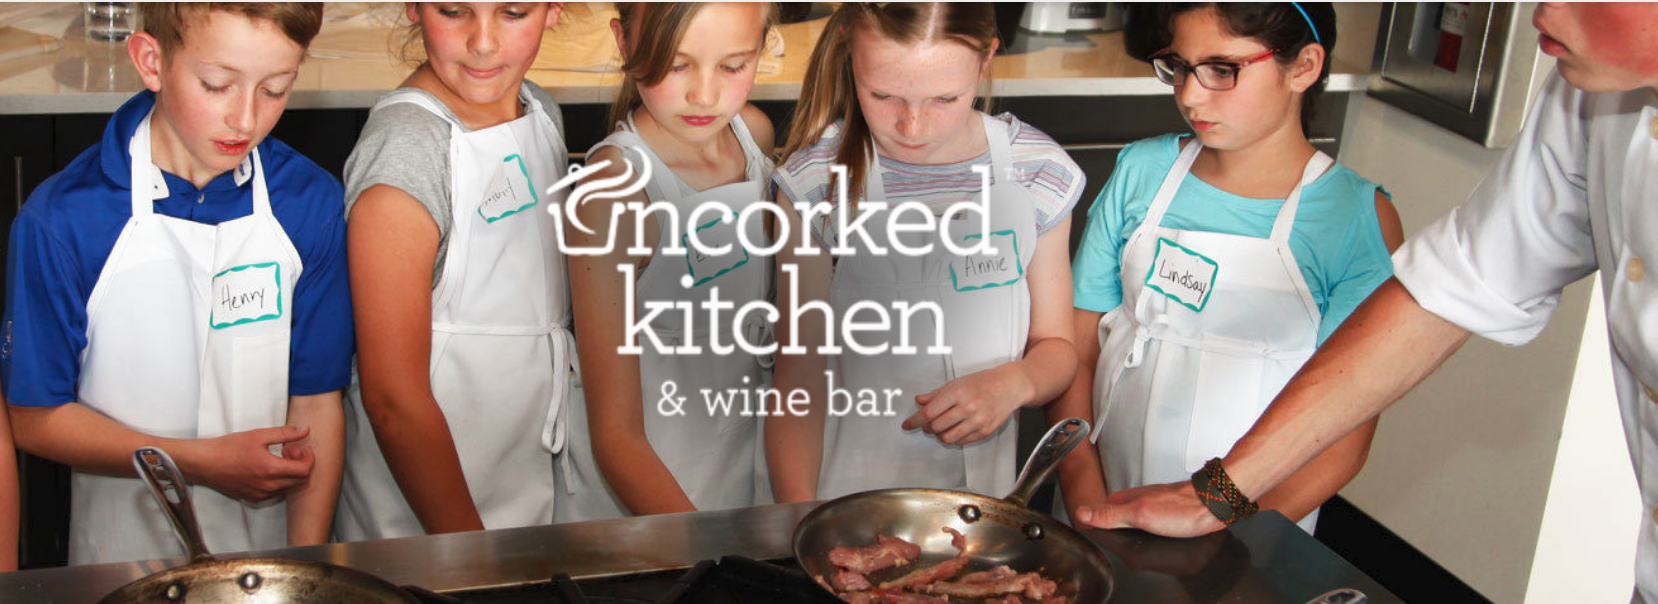 Uncorked Kitchen is an example of a cooking school for kids here in Colorado. Check Yelp or google for ideas in your home town!